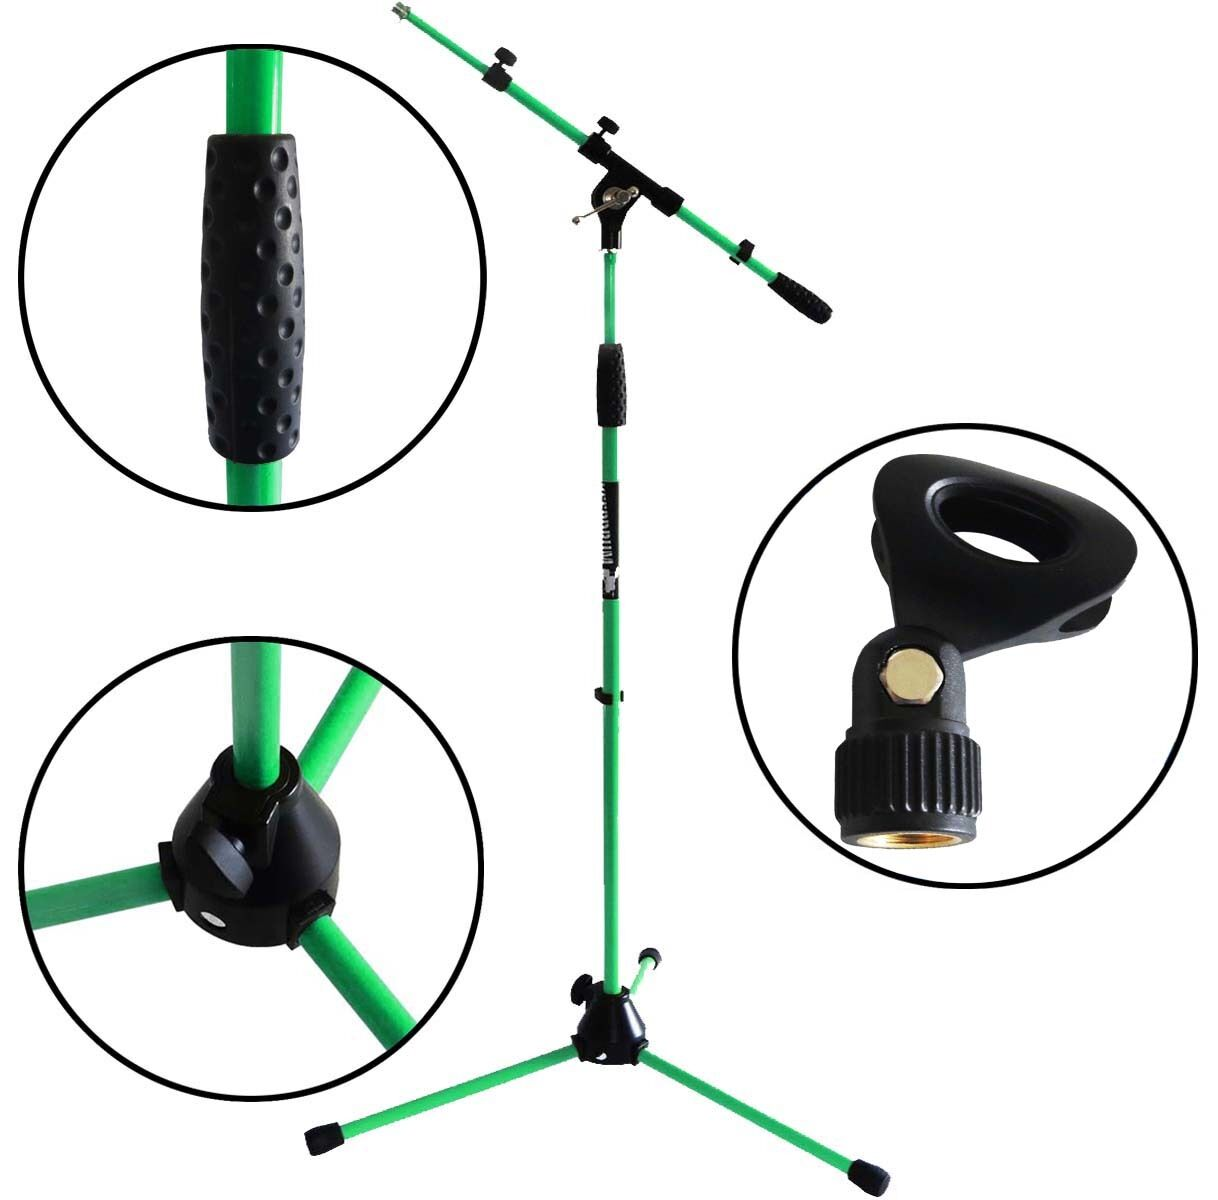 Keep DRUM MS106 Size Green Mic Stand Microphone Tripod Gallows + Microphone Clamp